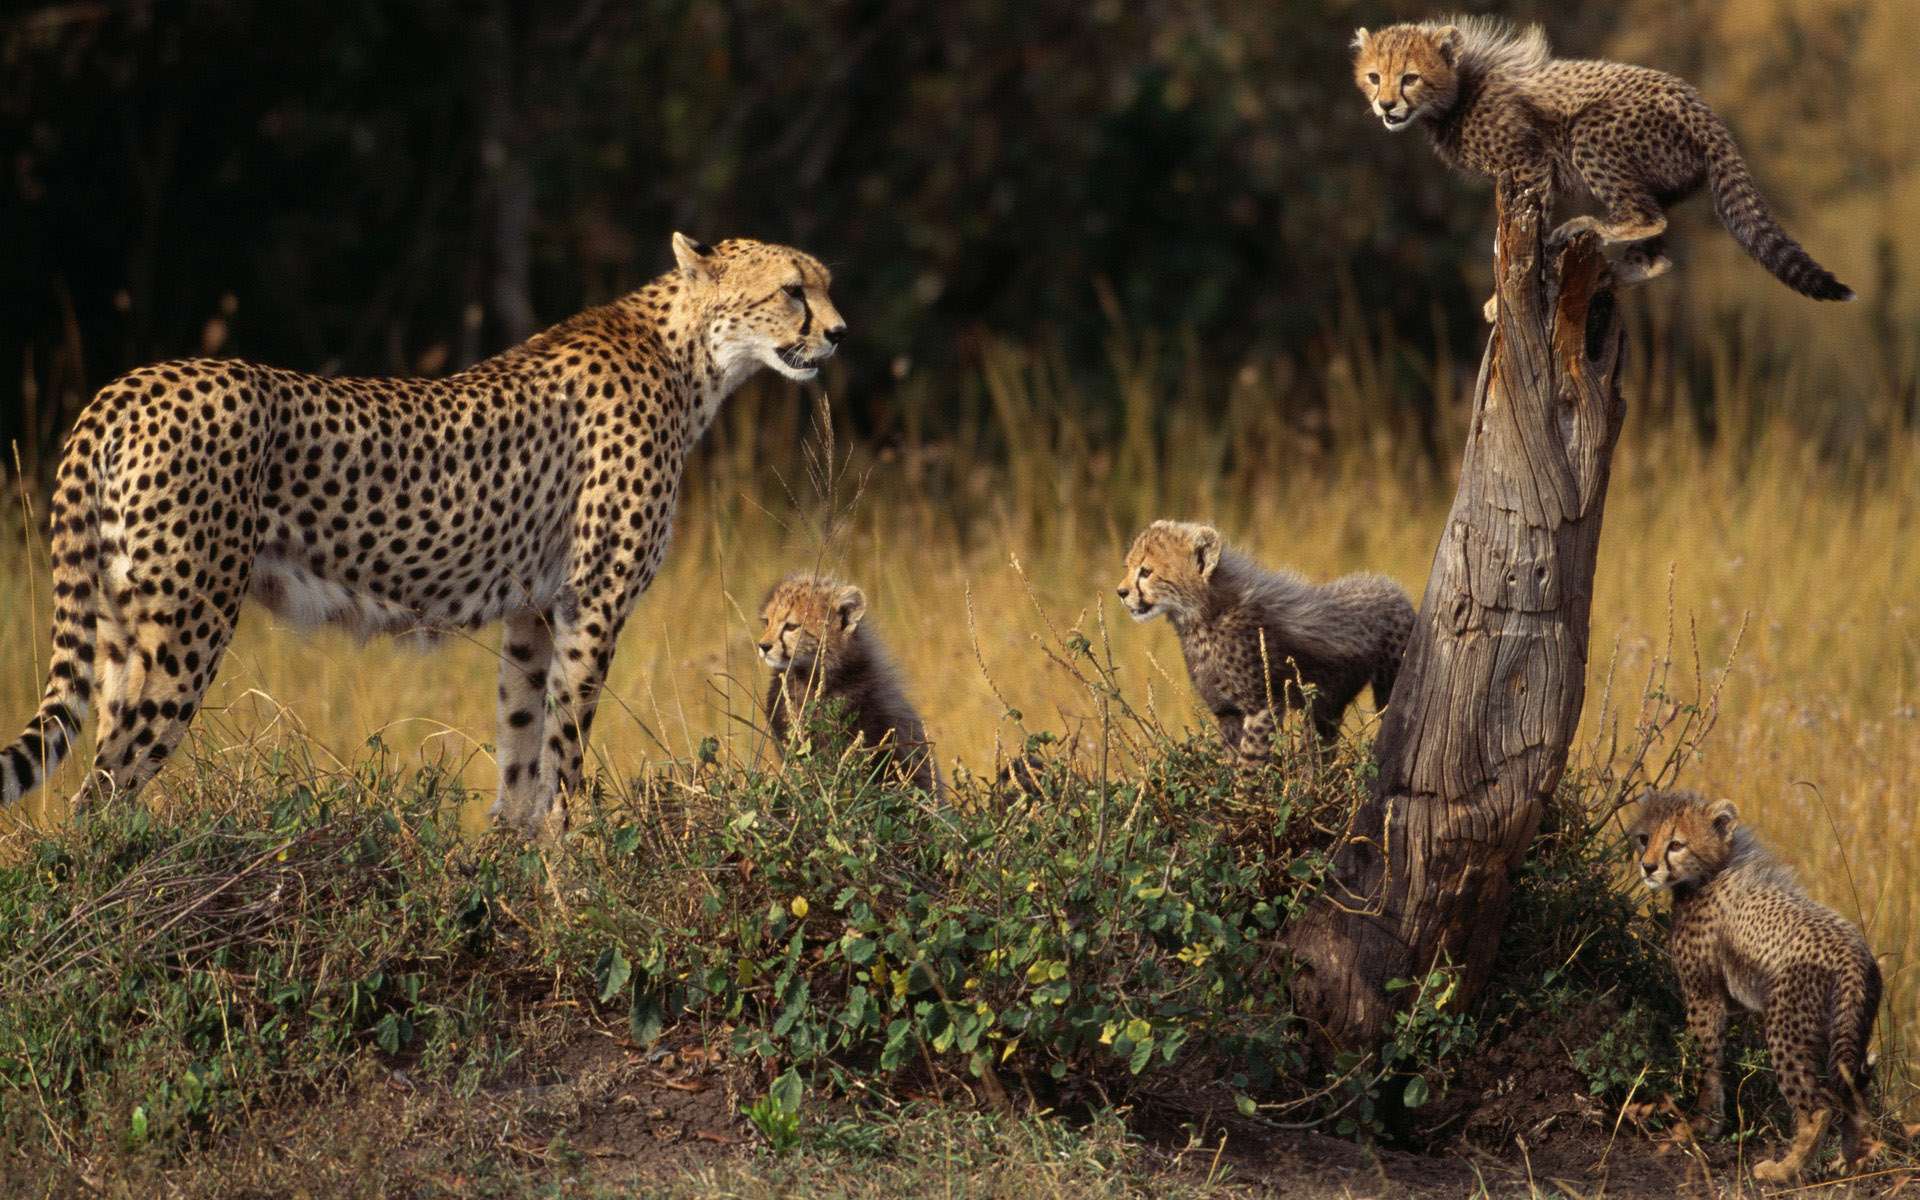 Cheetah Full HD Wallpaper And Background Image